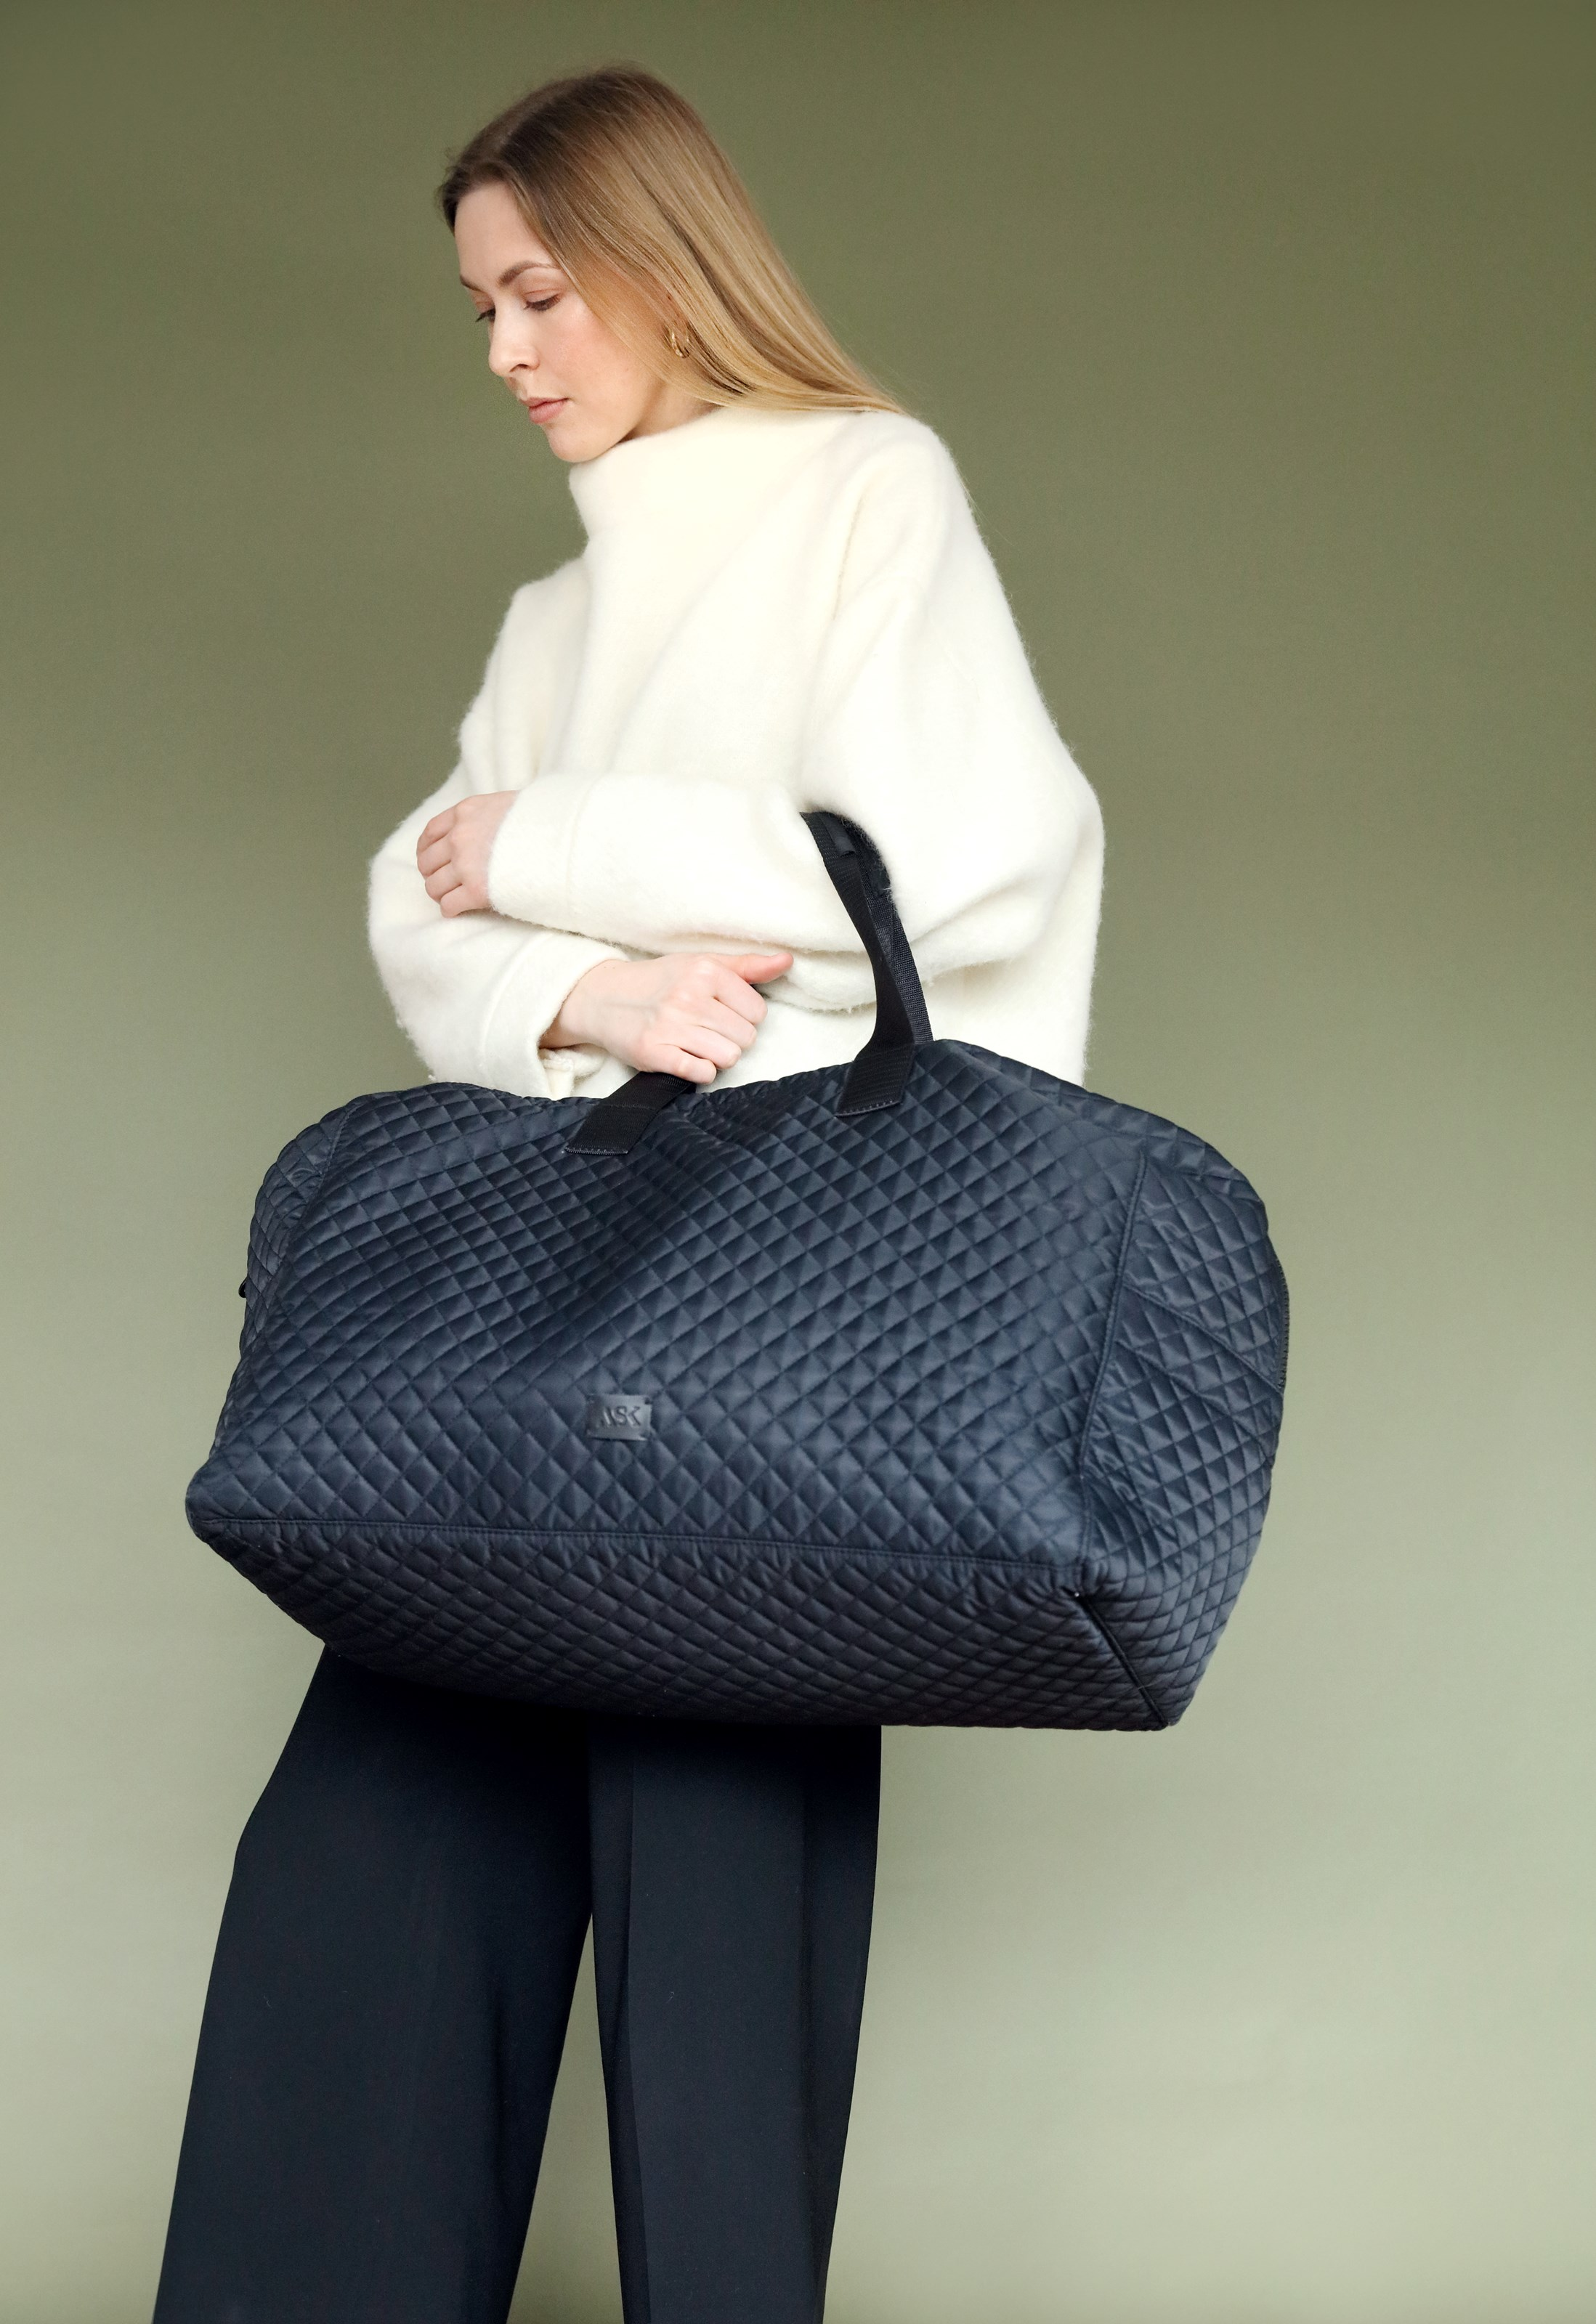 ASK Scandinavia creates bags and accessories with an aim to make everyday  life more organized and beautiful. Combining Scandinavian design with  premium ... 8a78a2fe3c